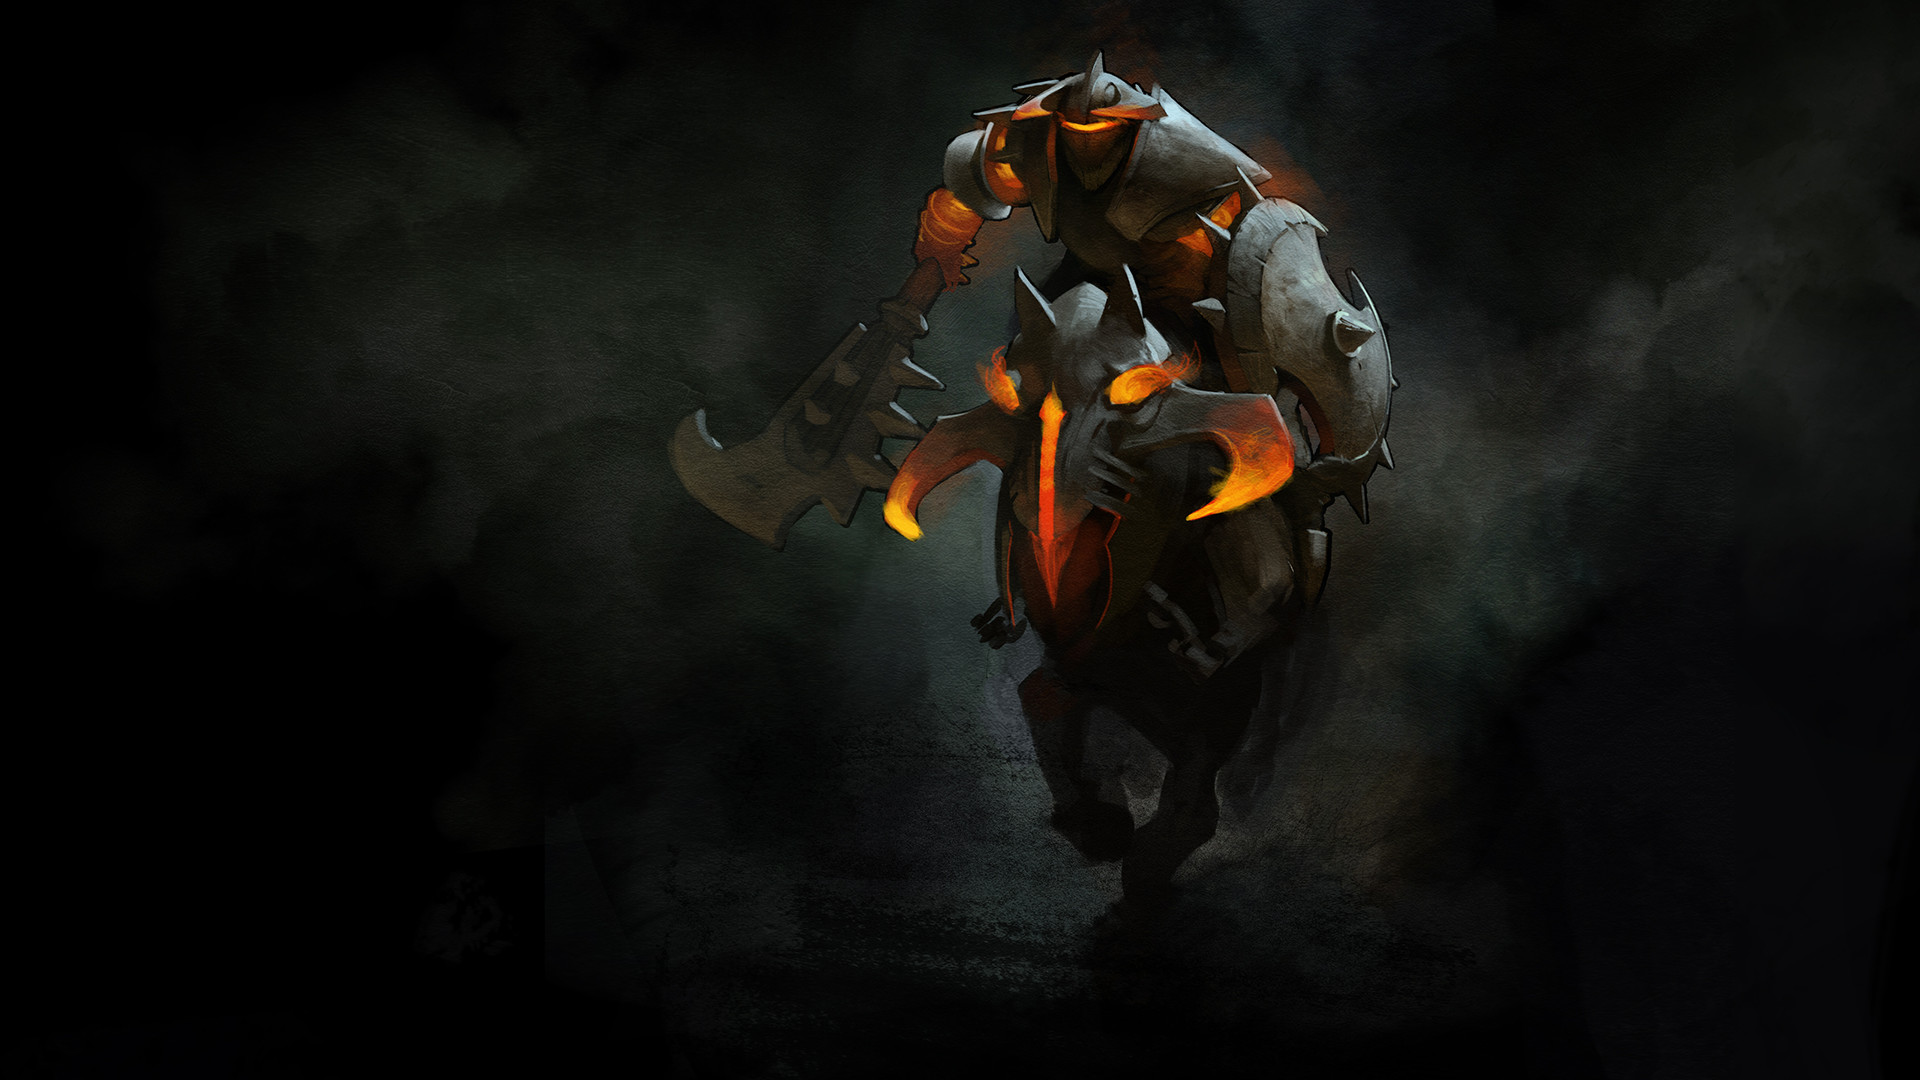 1920x1080 Chaos Knight - DotA 2 HD Wallpaper